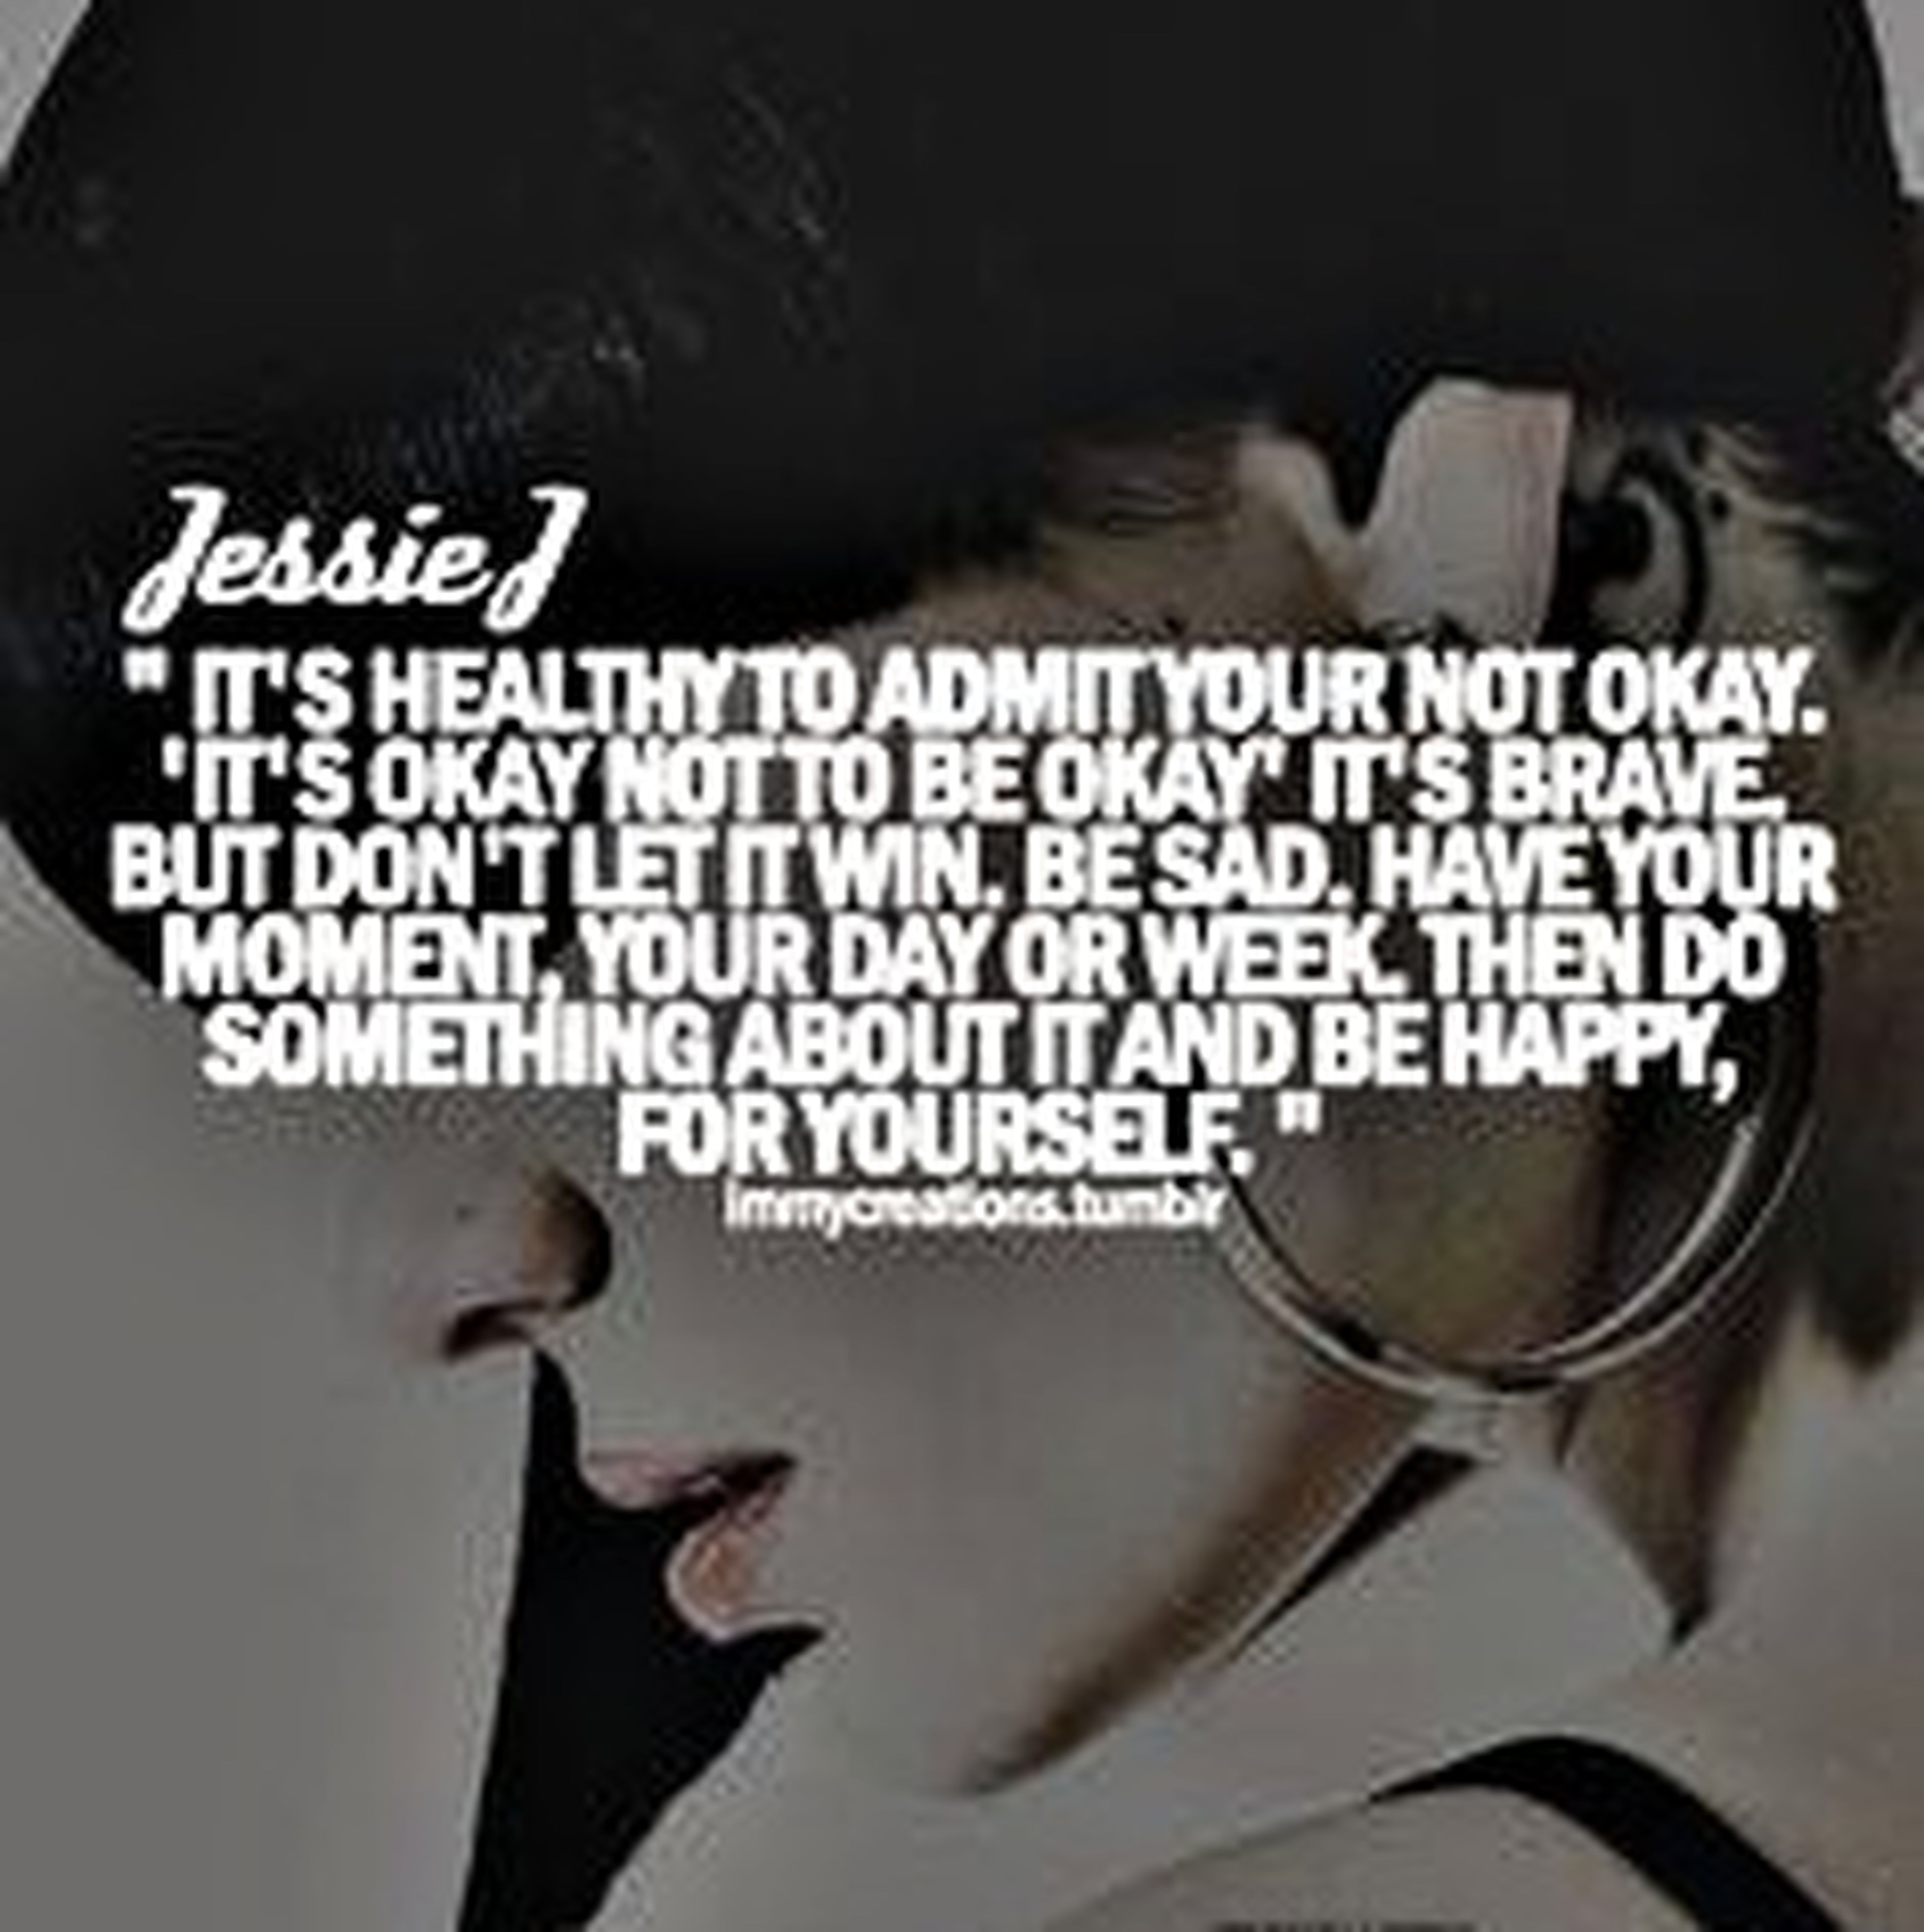 Here you go my dear... This is the quote. I'm trying to do something about it... Its Okay Not To Be Okay! Keep On Keeping On Depression Trying